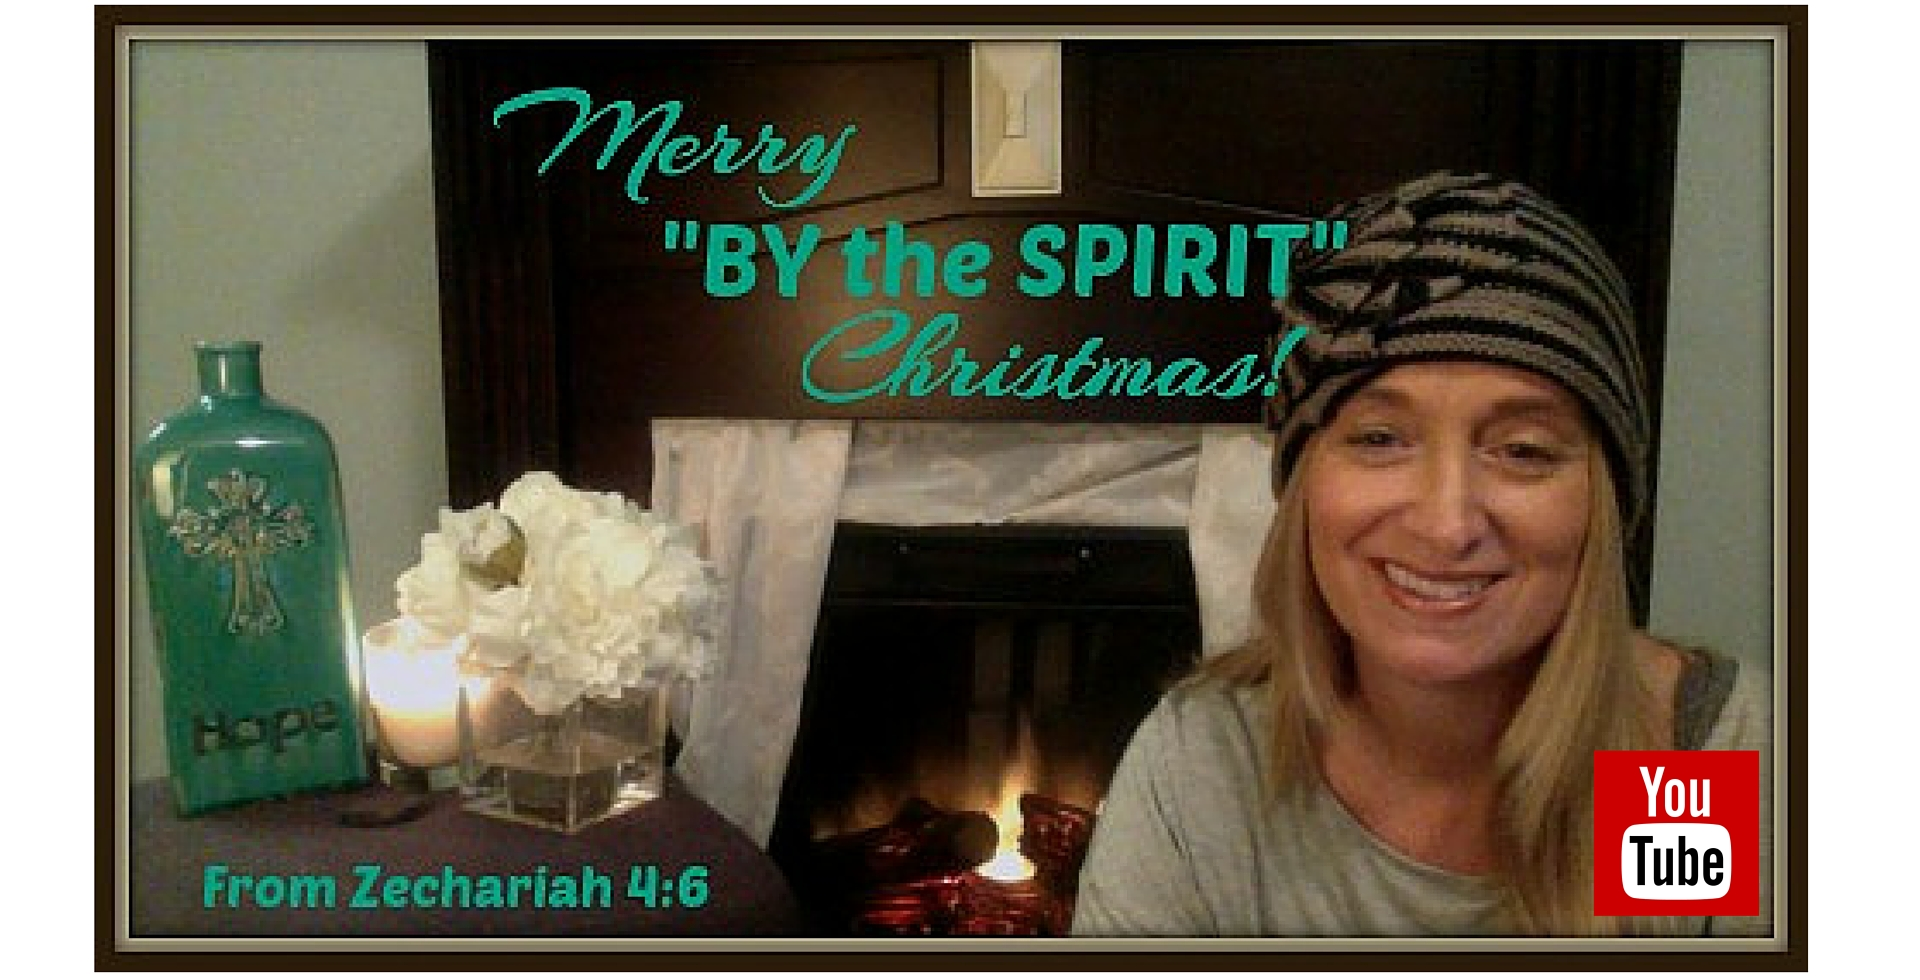 Merry By the Spirit Christmas